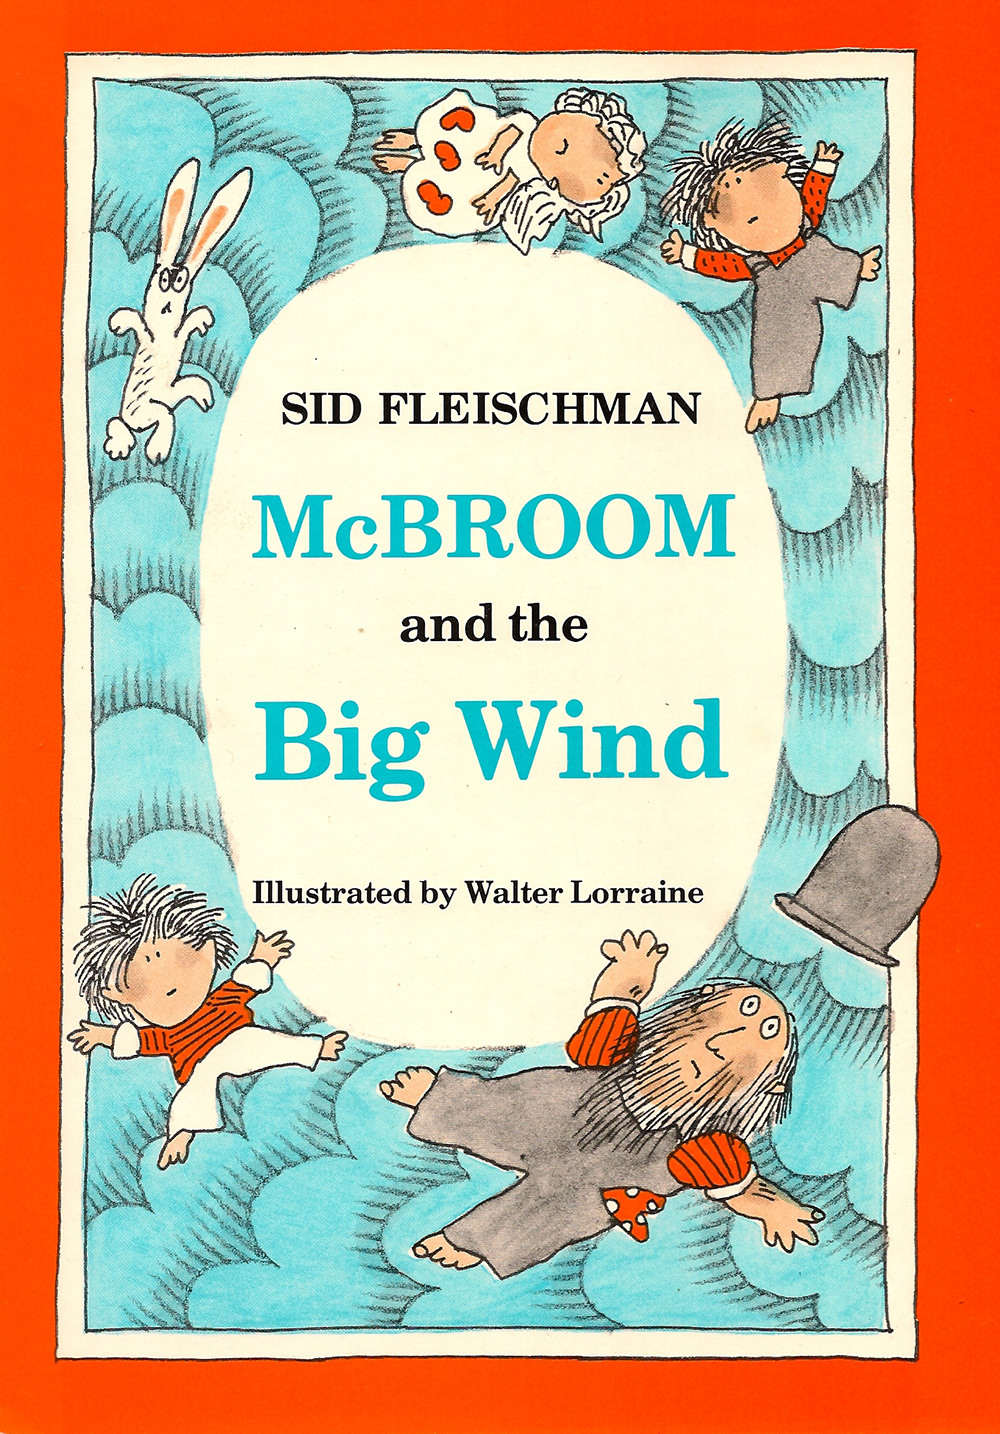 McBroom and the Big Wind